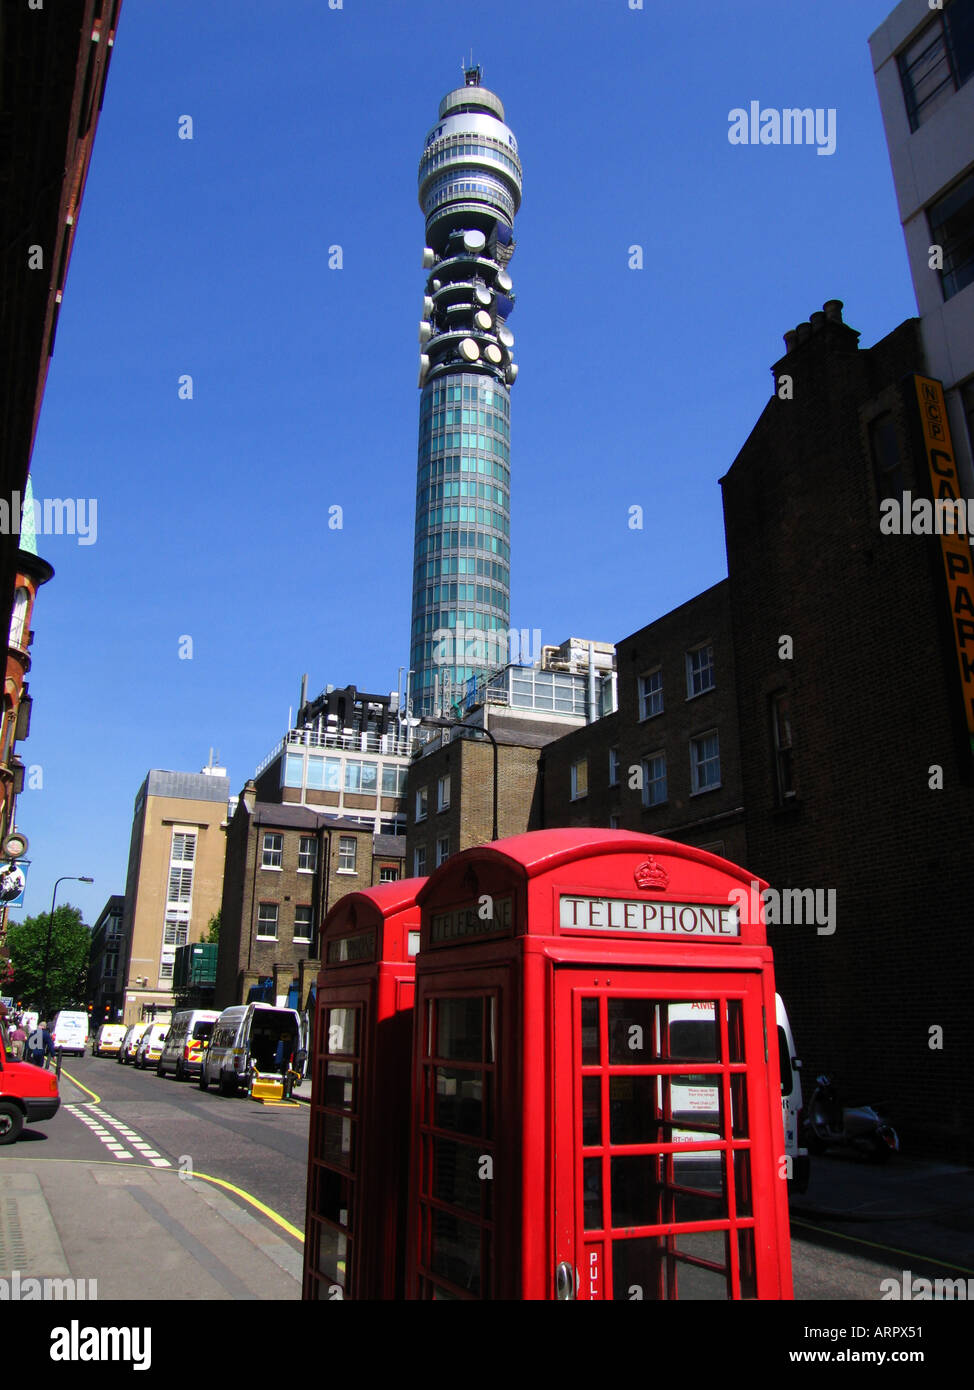 Telephone kiosk with BT Tower in the distance City of Westminster Central London London England Great Britain United Kingdom Eur - Stock Image